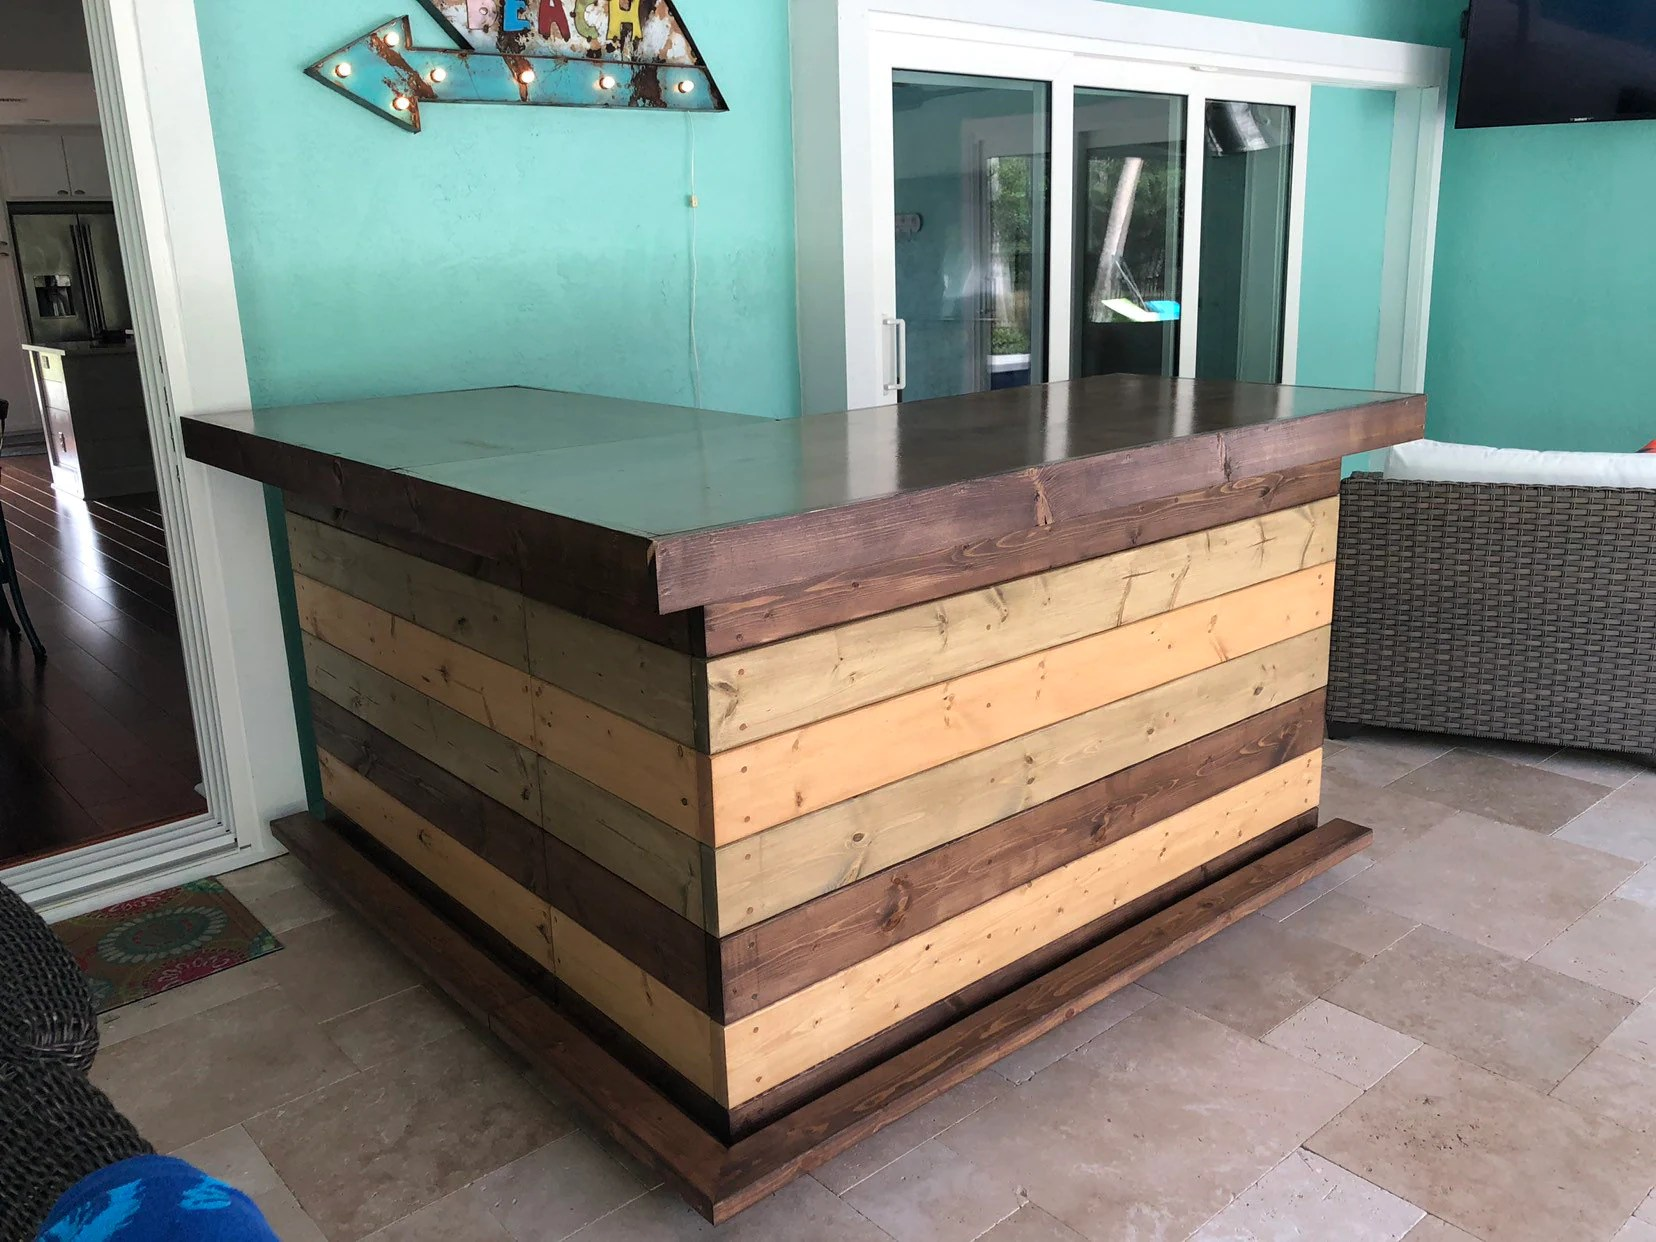 Rustic Style Bar The Rocky Brown Top 6 X 6 Rustic Finished Barnwood Look Or Pallet Style Bar Sales Counter Reception Desk With Footrail